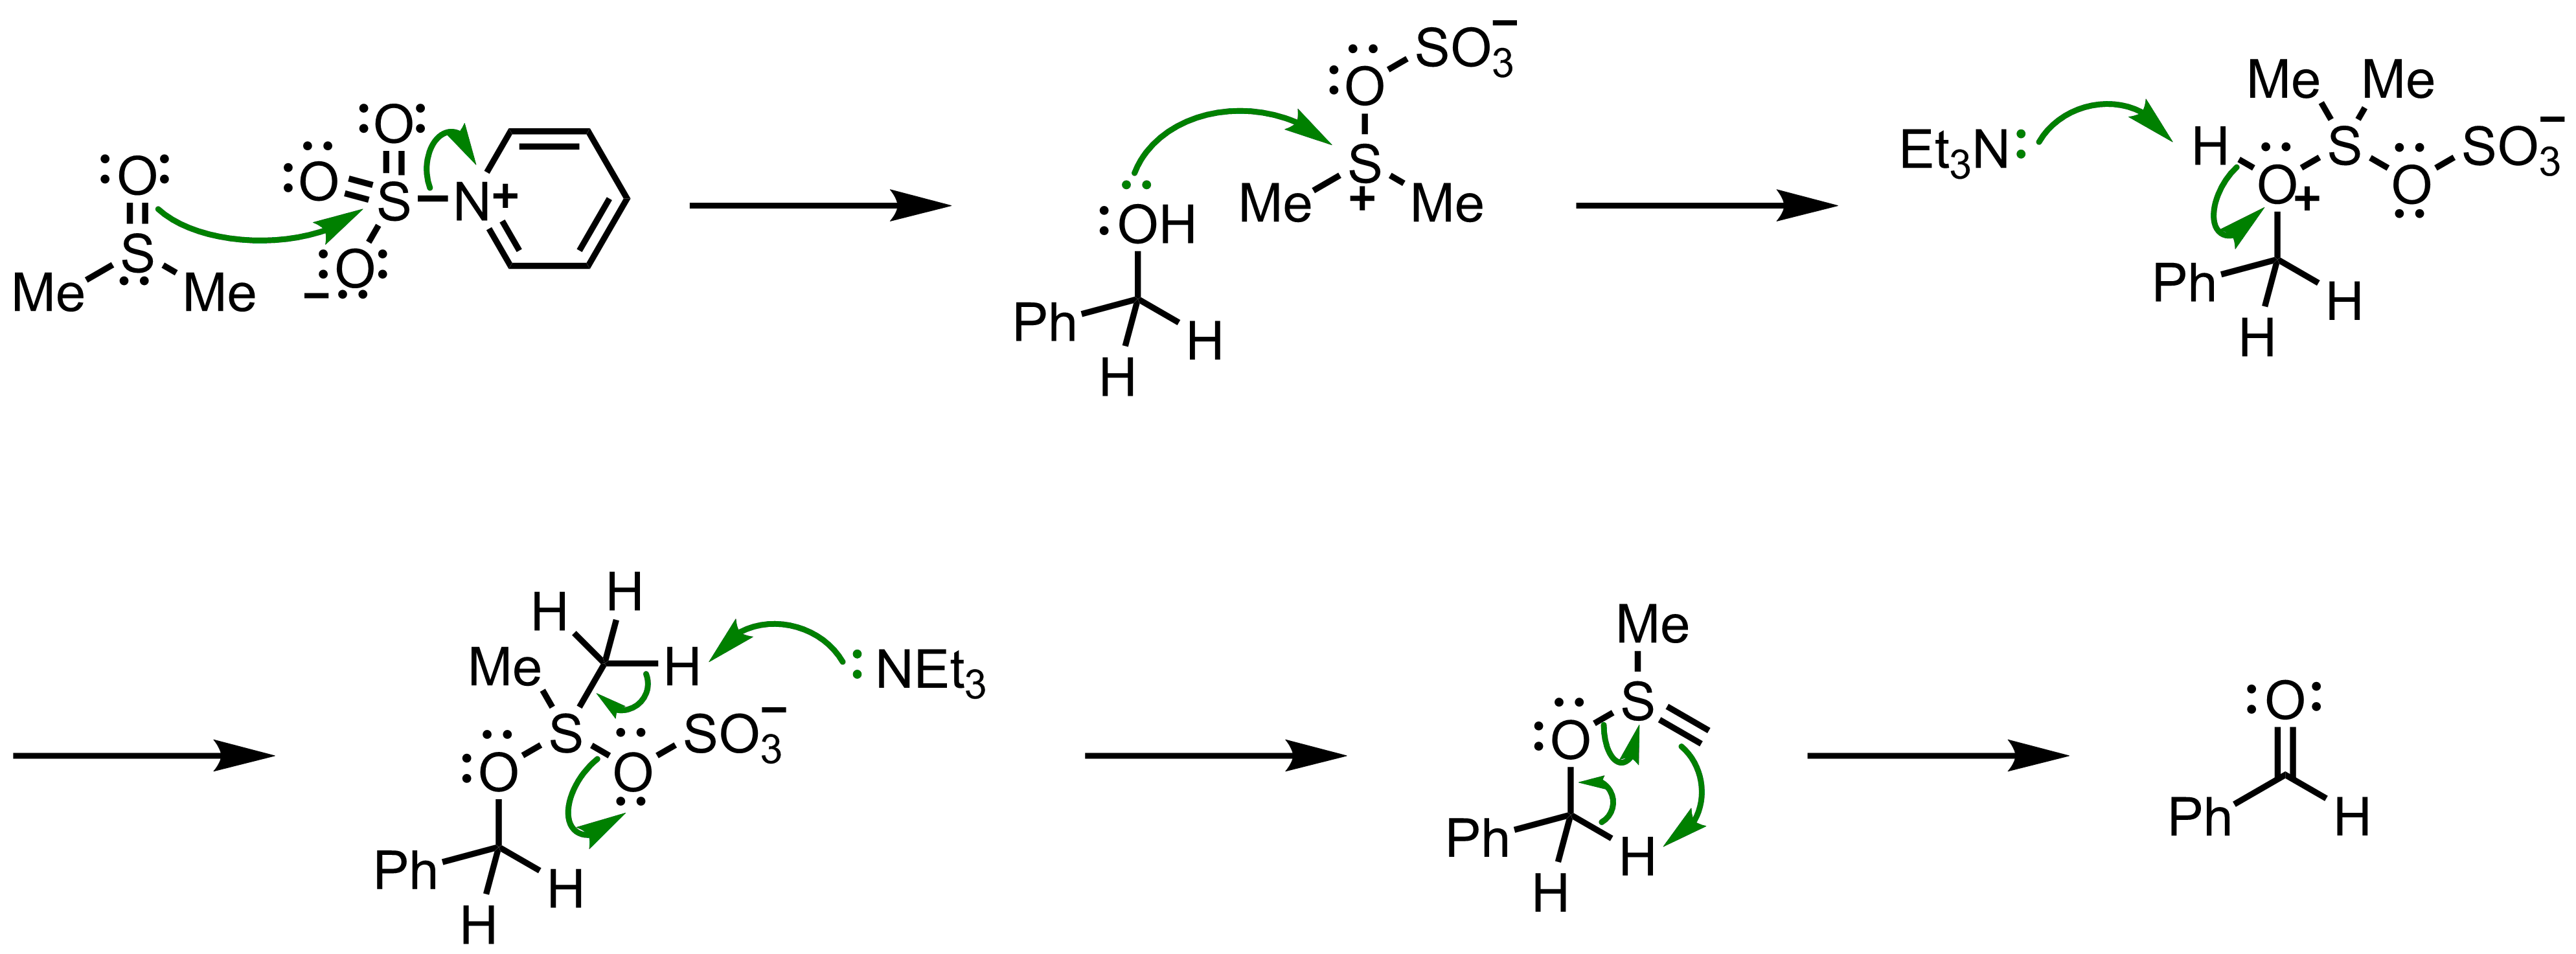 Mechanism of the Parikh-Doering Oxidation